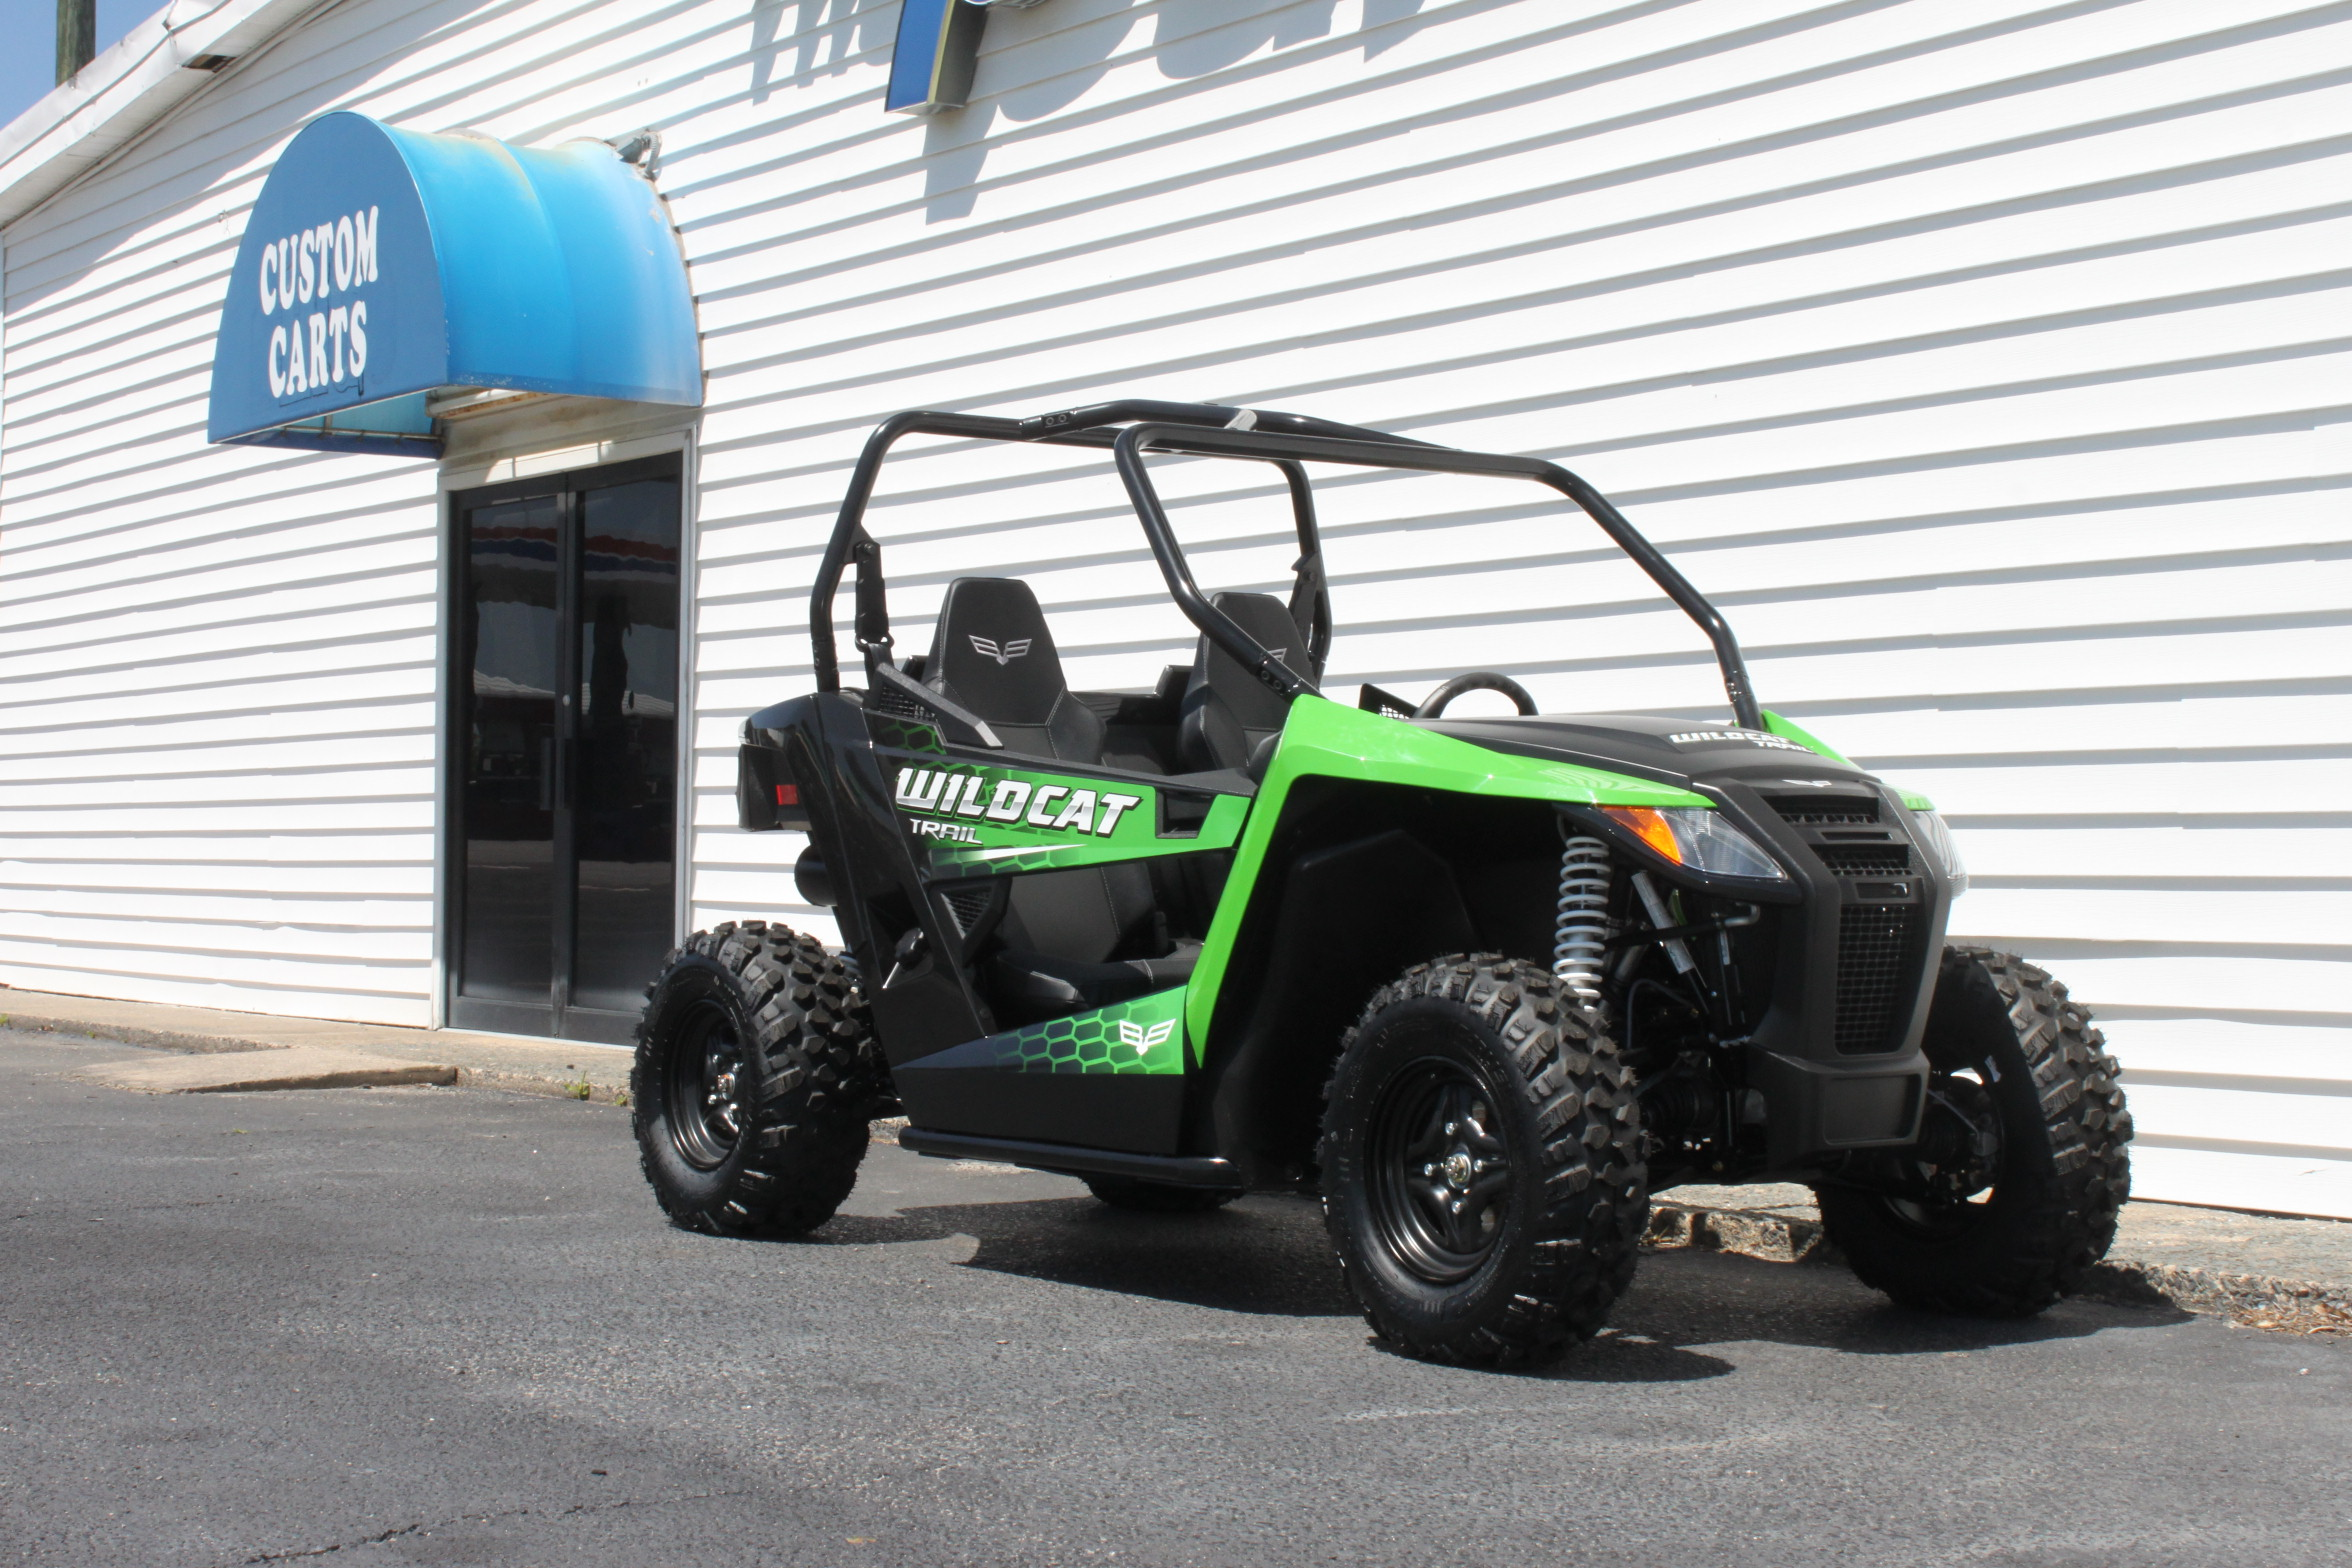 STOCK# 18WCTRLIME, 2018 TEXTRON OFF ROAD WILDCAT TRAIL UTV